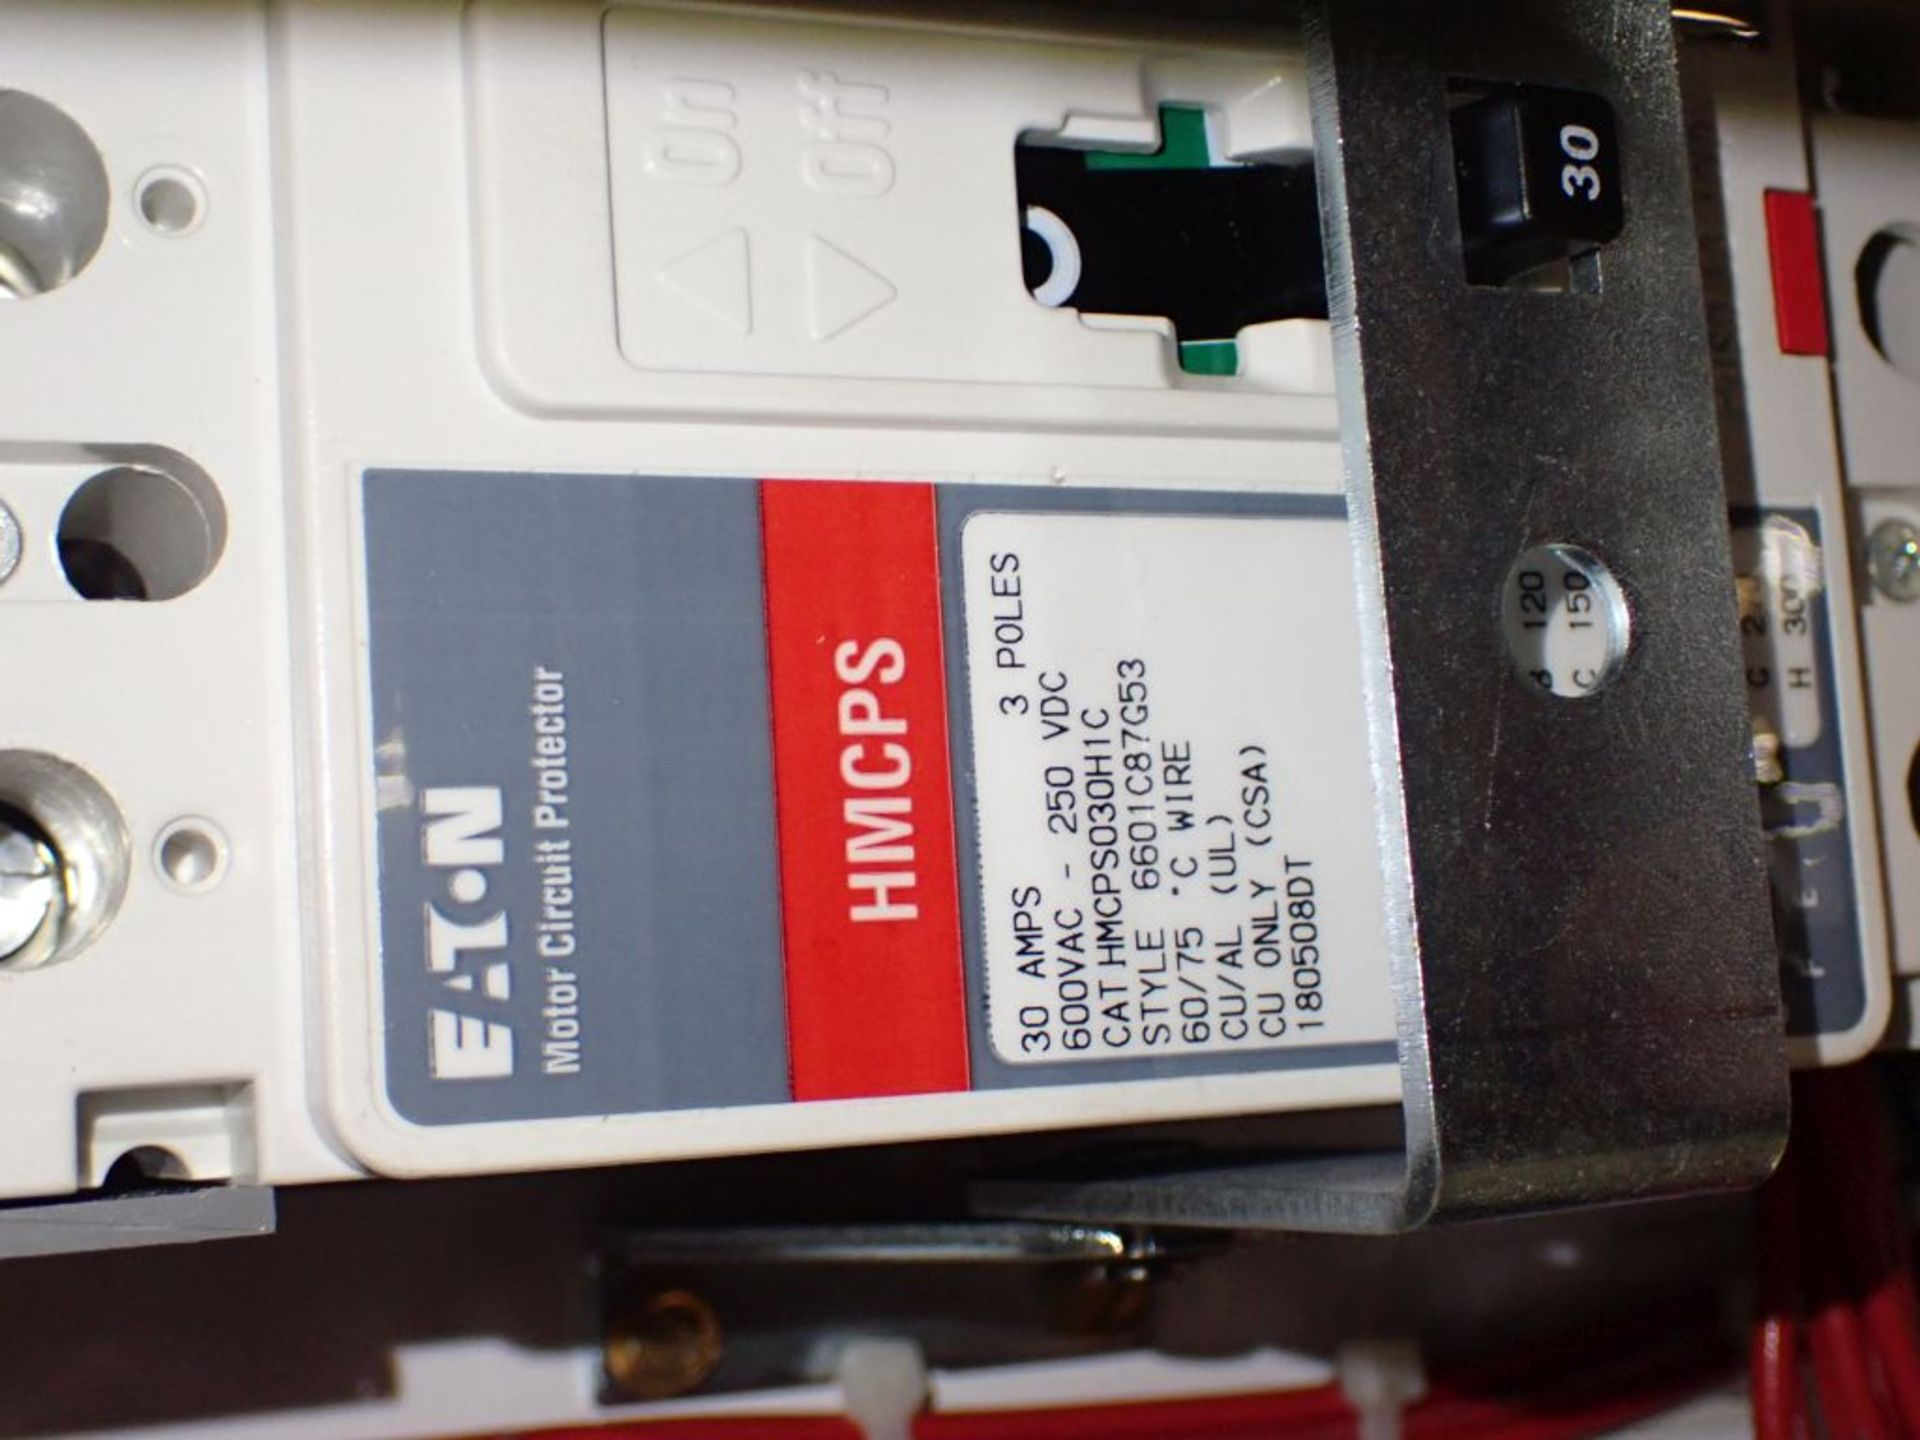 Eaton Freedom 2100 Series Motor Control Center | (11) F206-30A-10HP; (5) F206-15A-10HP; (1) SVX900- - Image 49 of 102